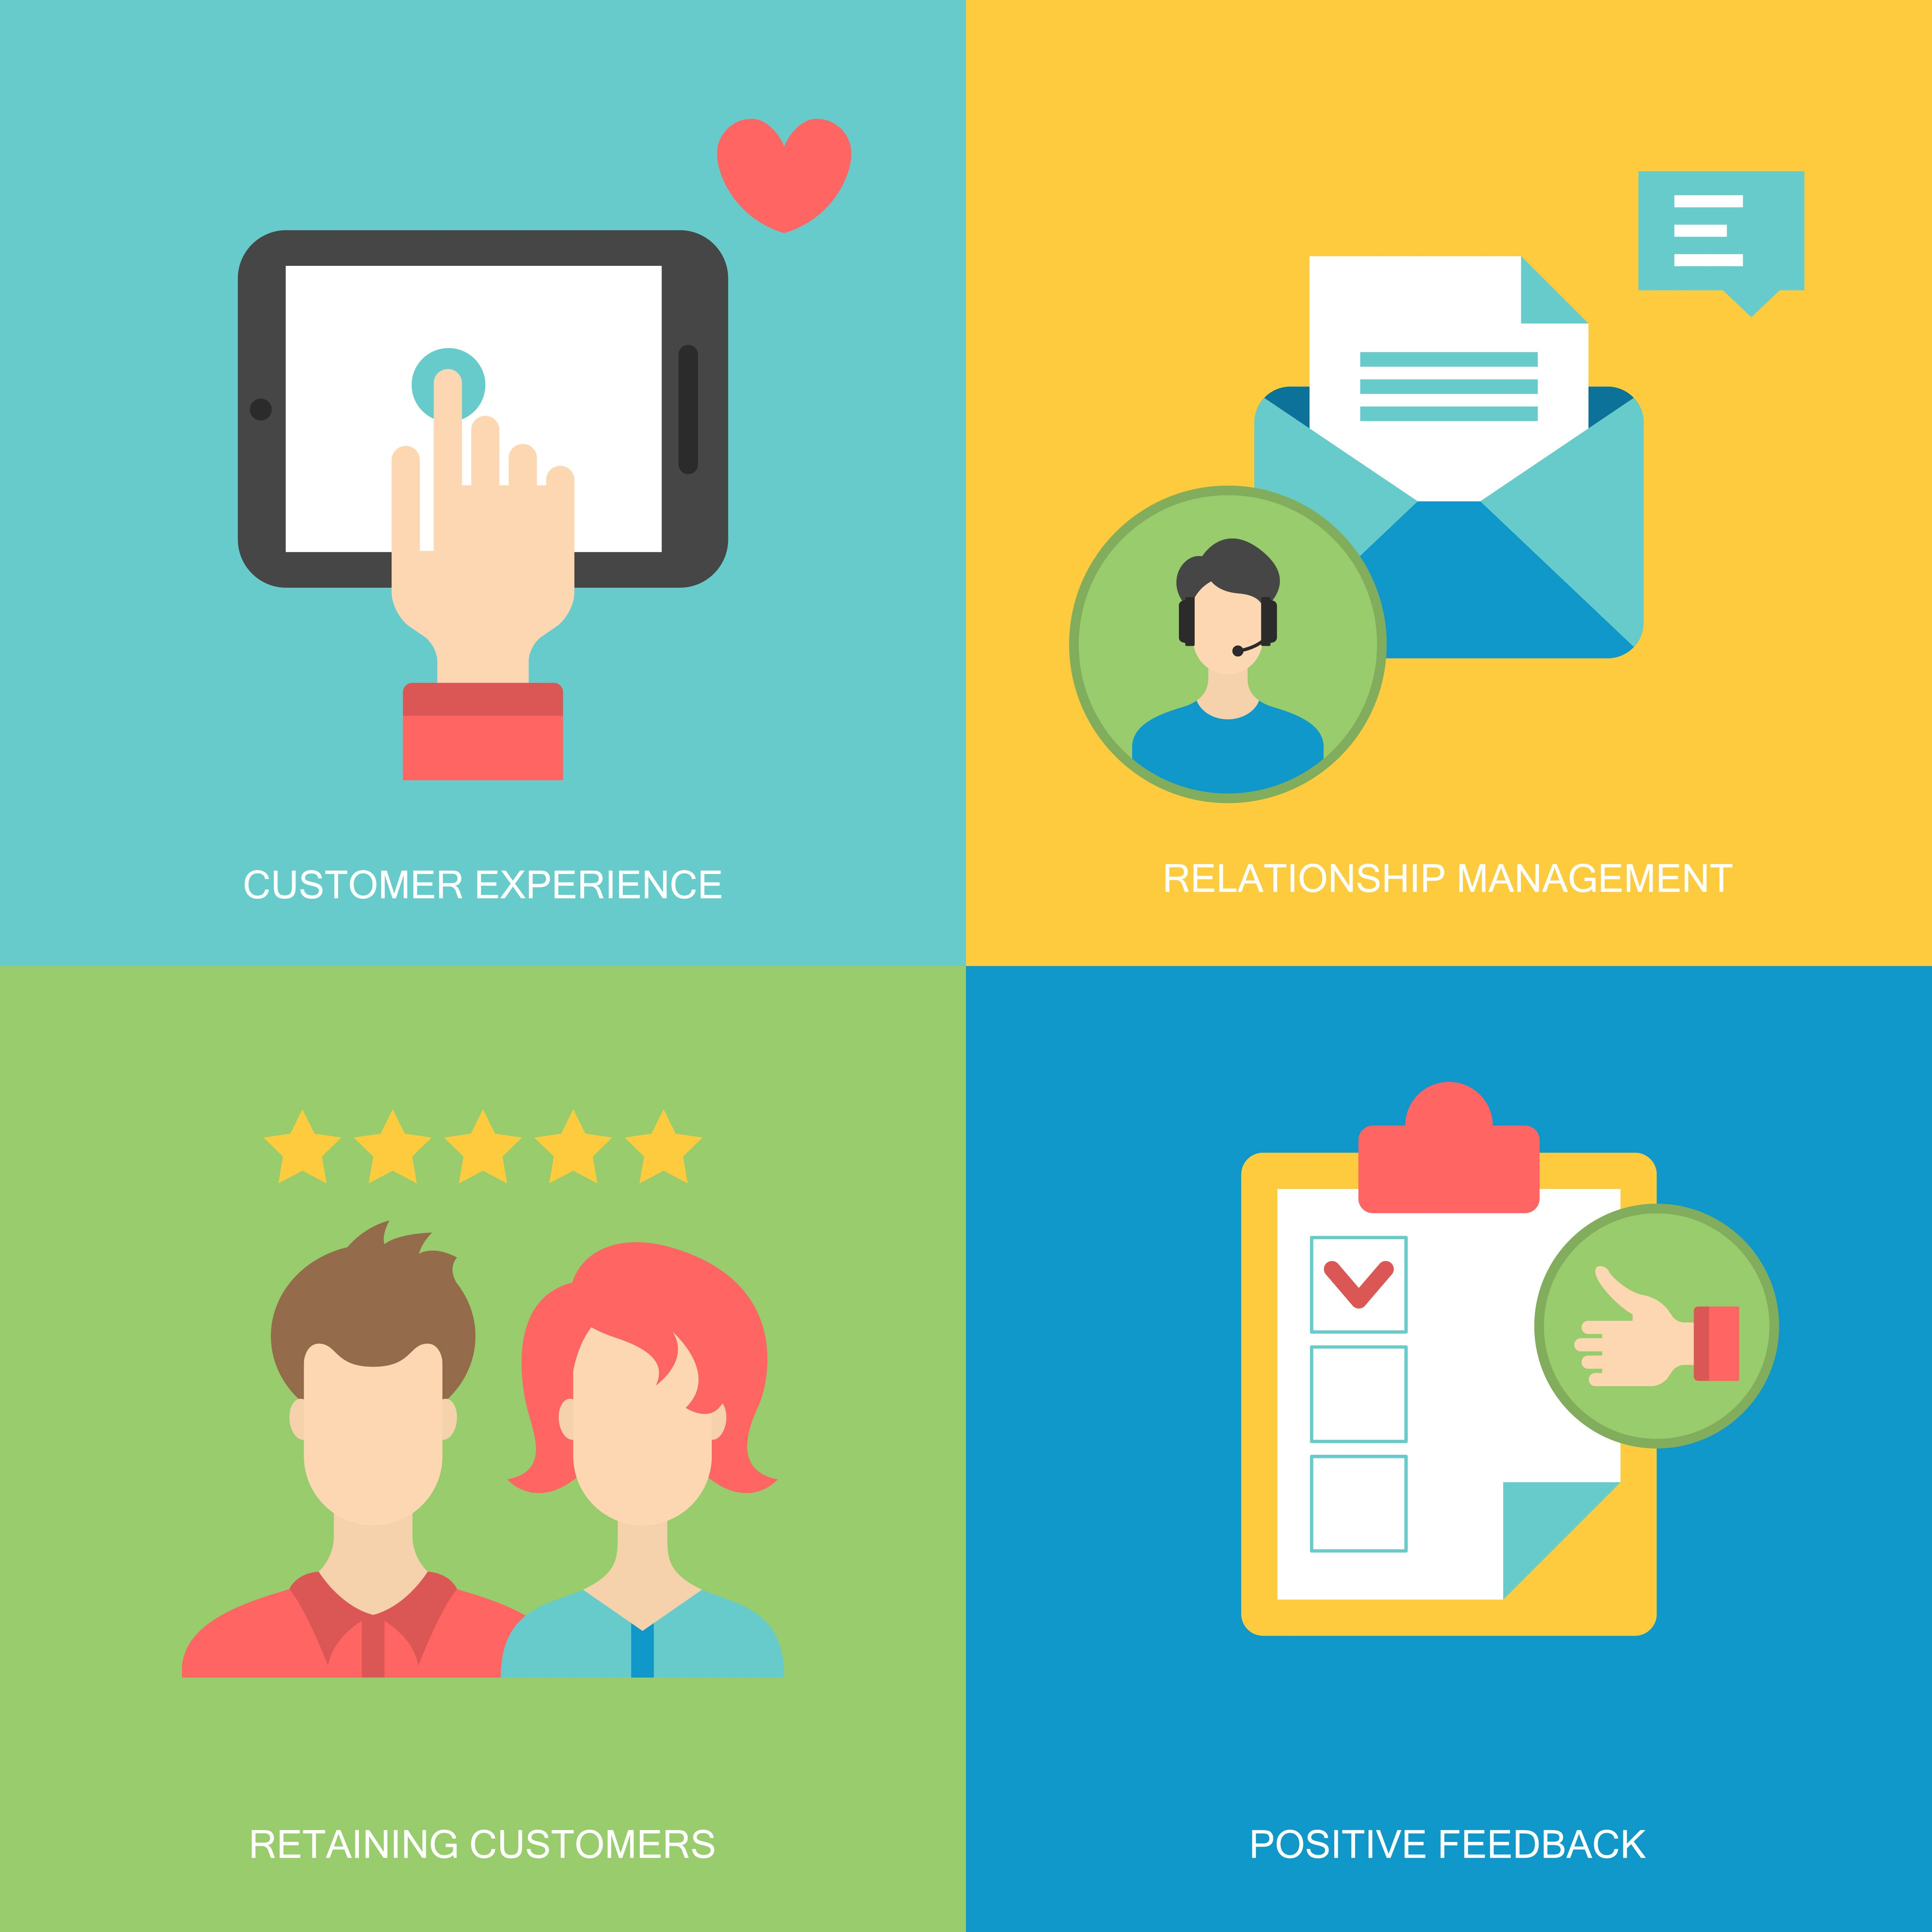 3 Essential Software Tools To Help Improve Your Customer Experience